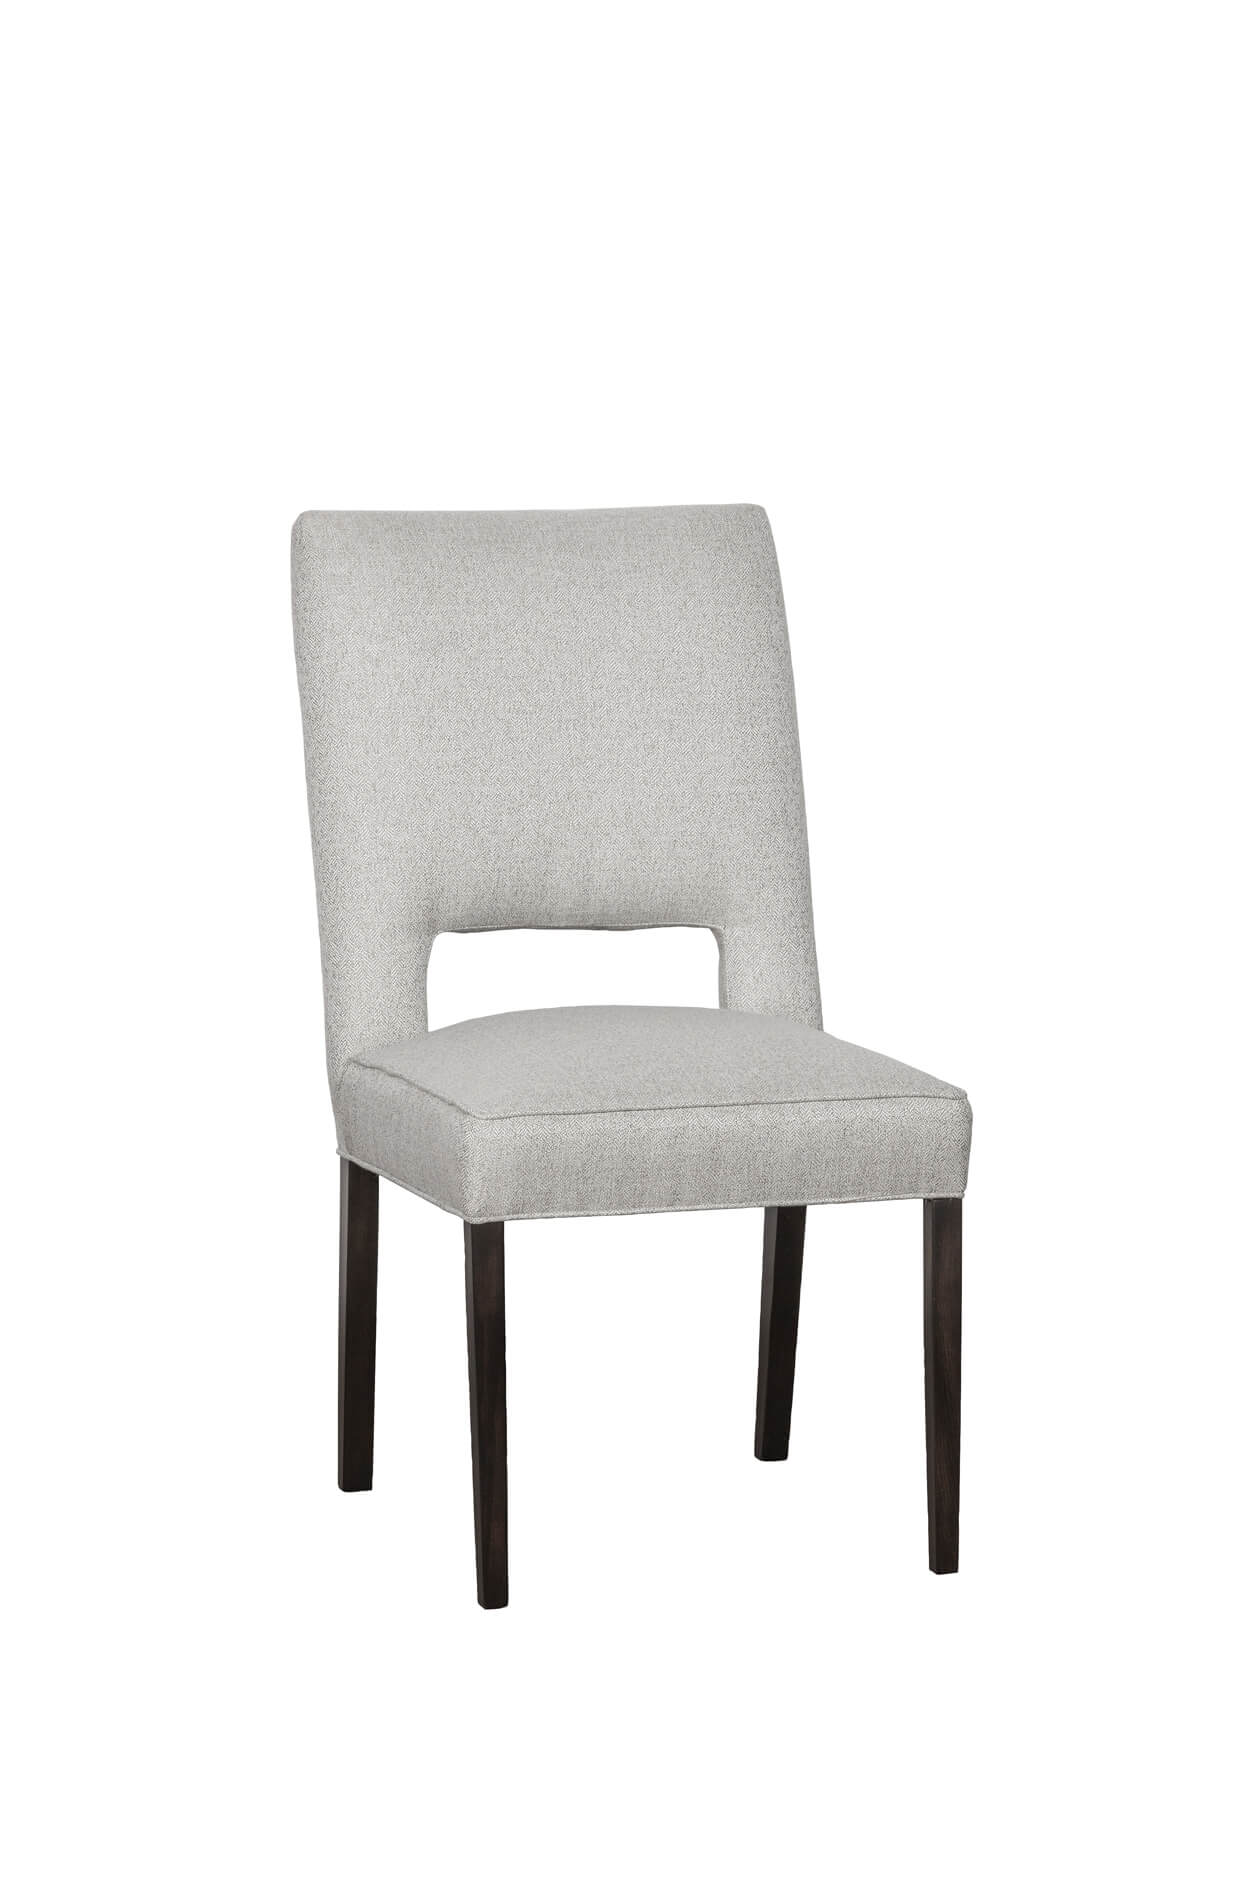 Thompson Upholstered Dining Chair